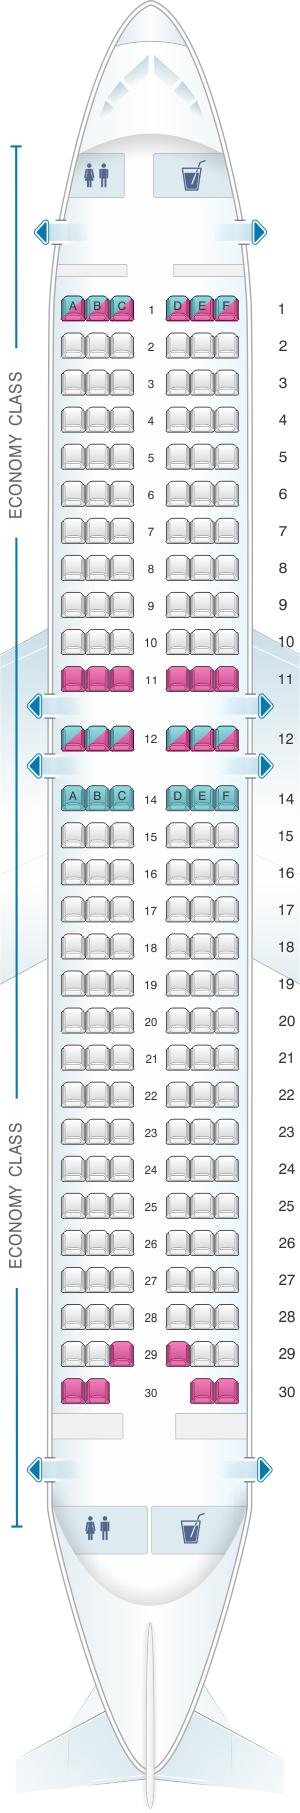 Seat map for ANA - All Nippon Airways Airbus A320 domestic